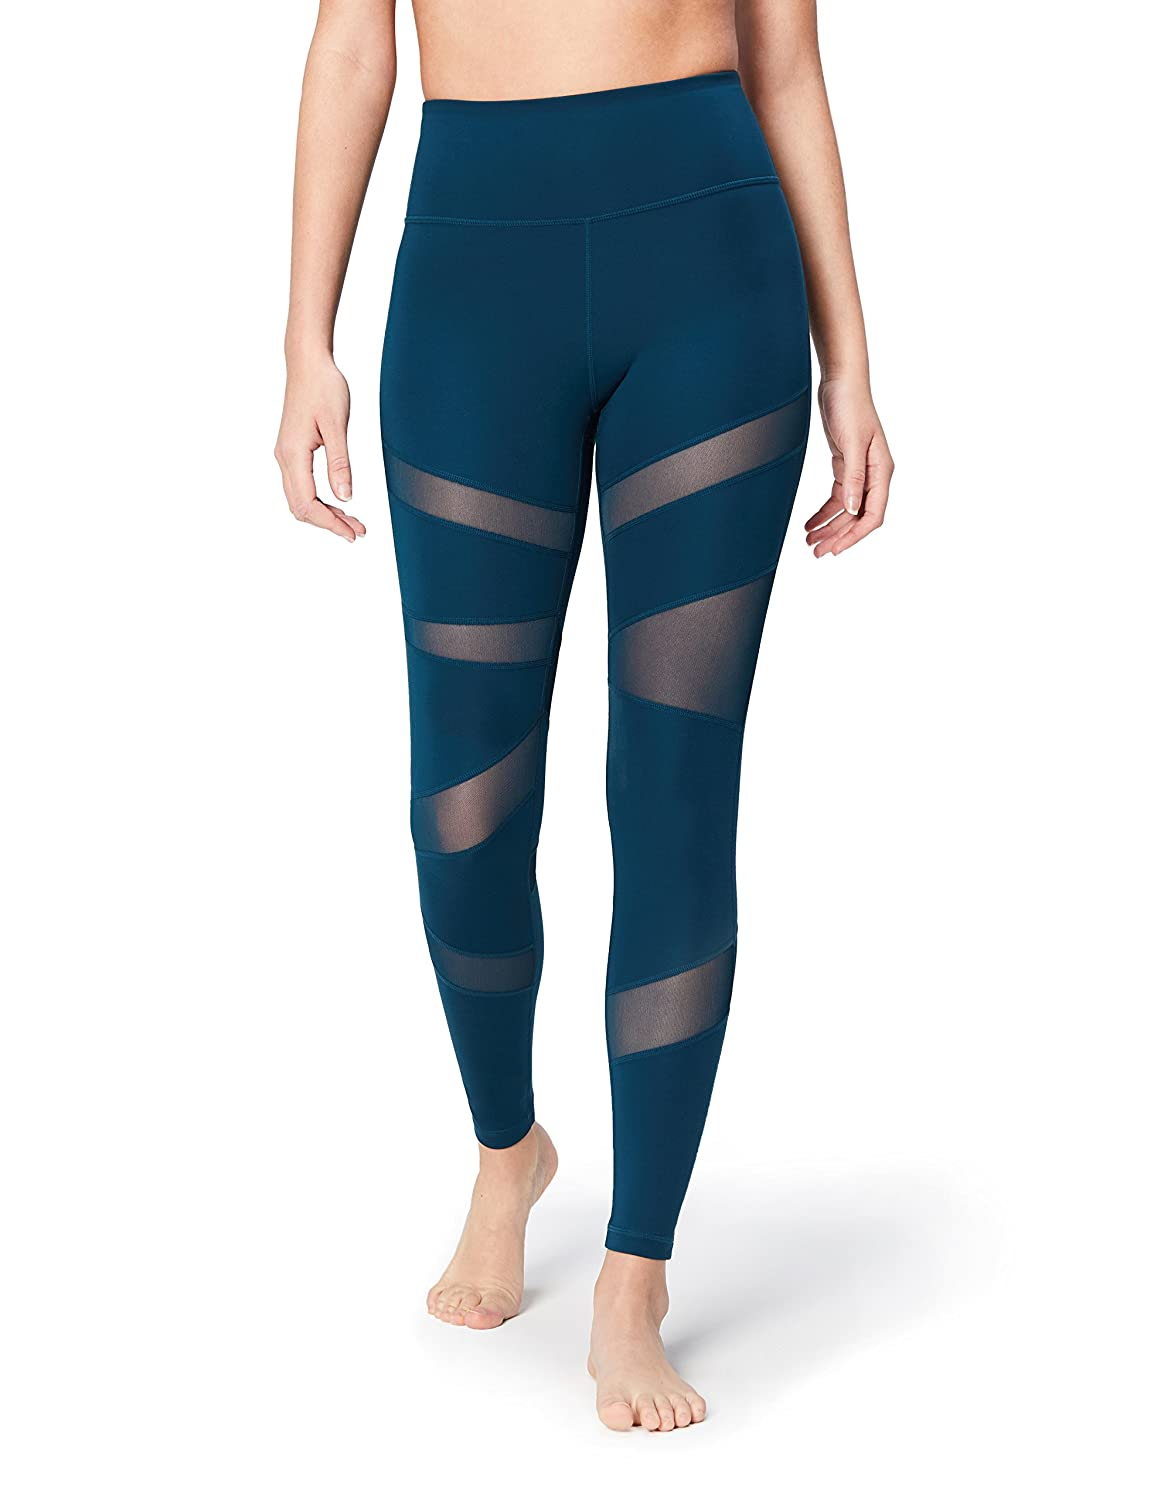 6182165befdfd6 Core 10 Women's Icon Series - The Warrior Mesh Legging: Amazon.ca: Clothing  & Accessories